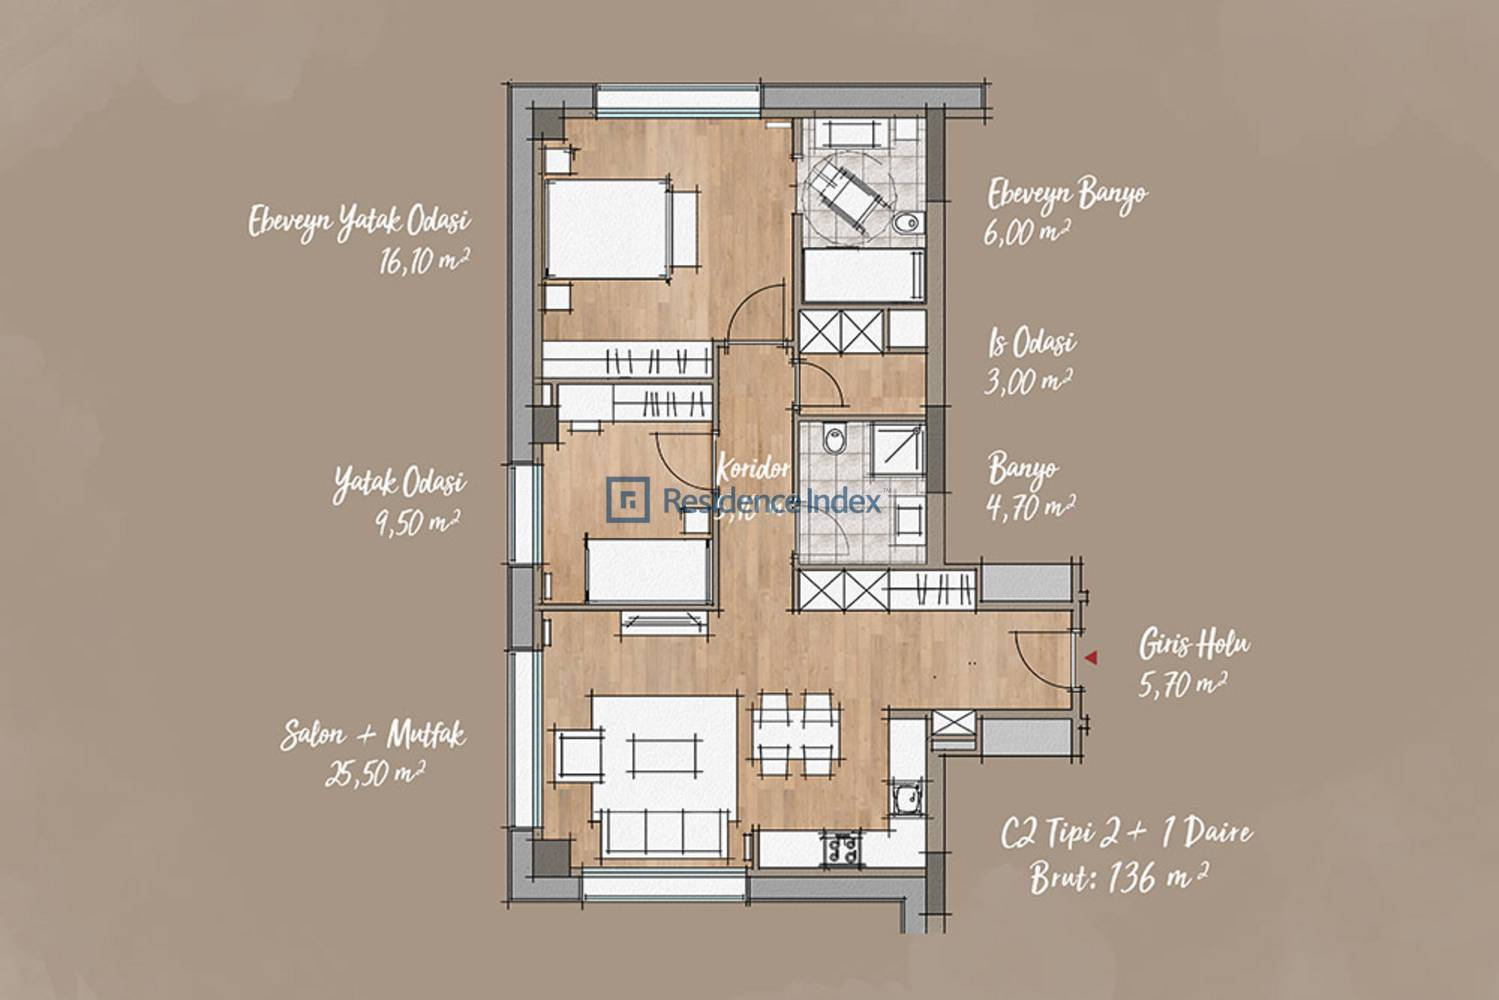 Antwell Life Care Residence  C2 Tipi